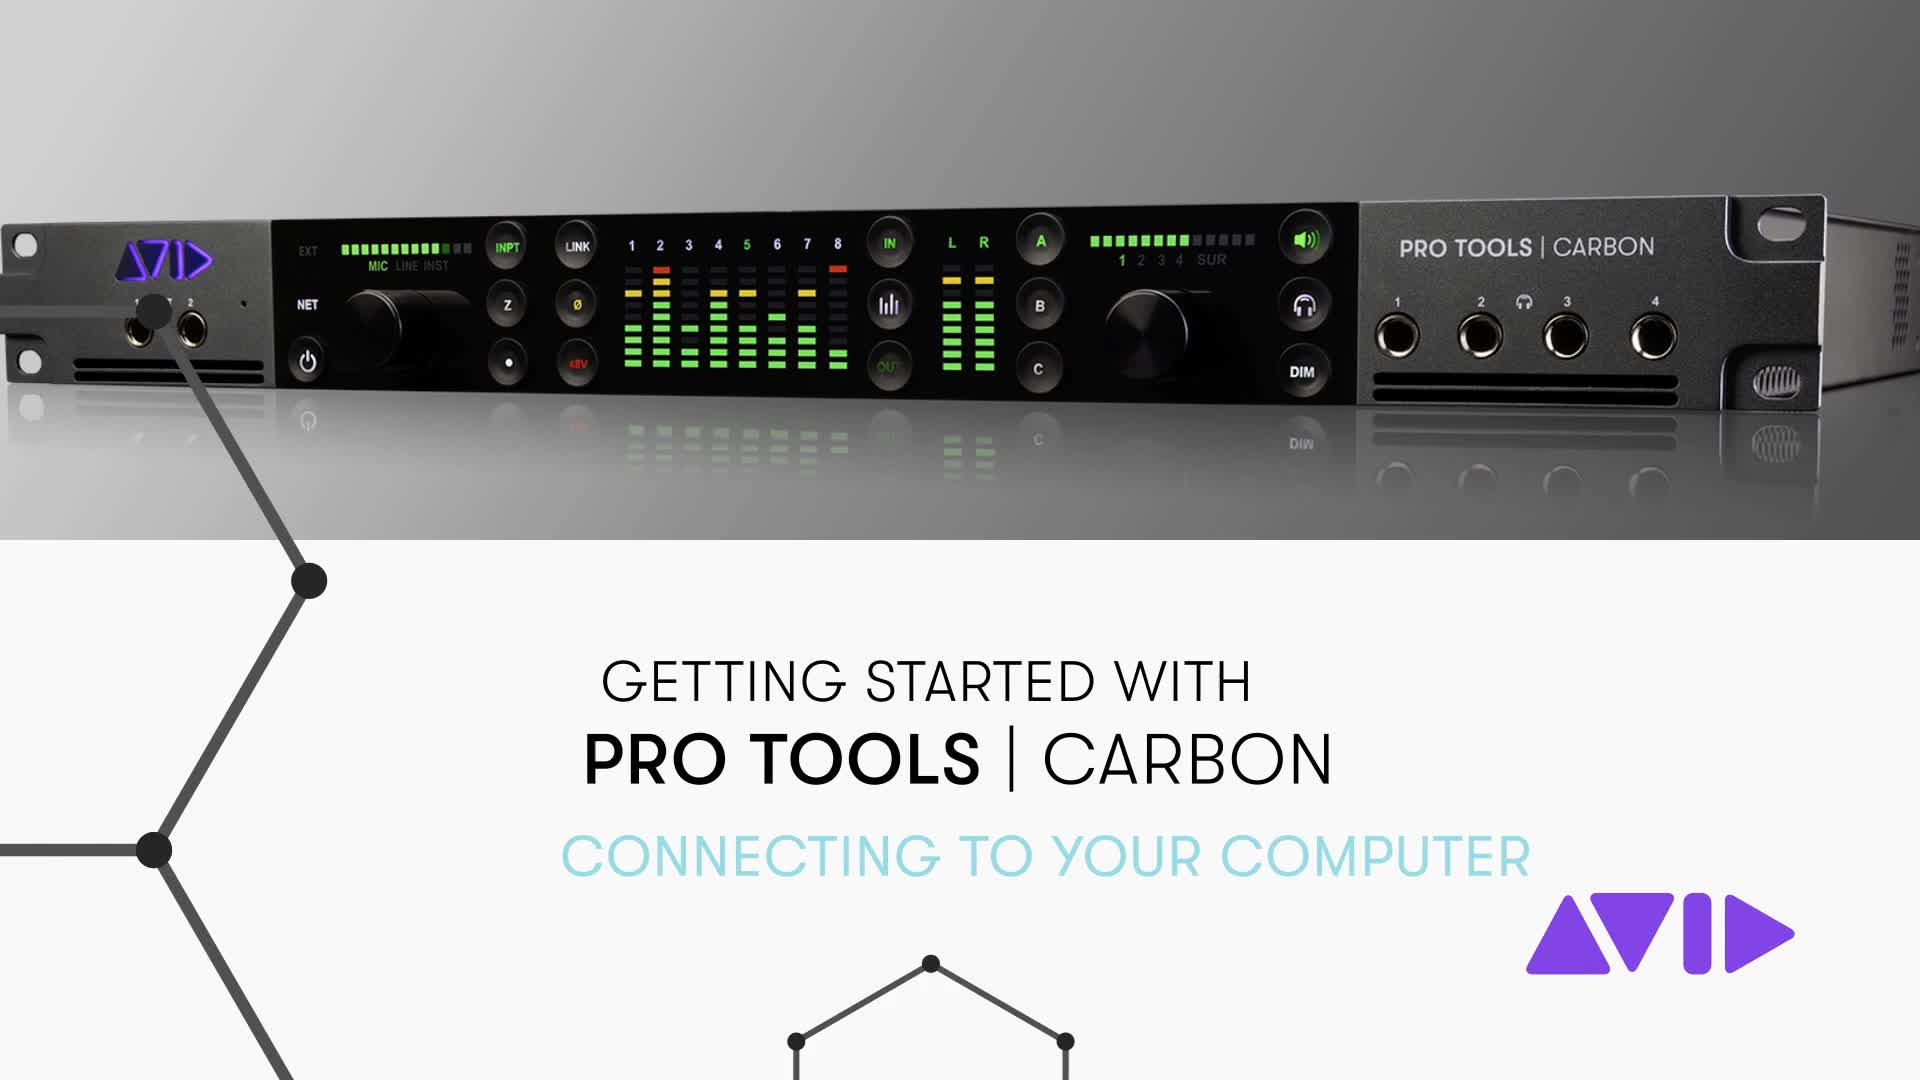 03 Pro Tools Carbon Getting Started - Connecting to Your Computer